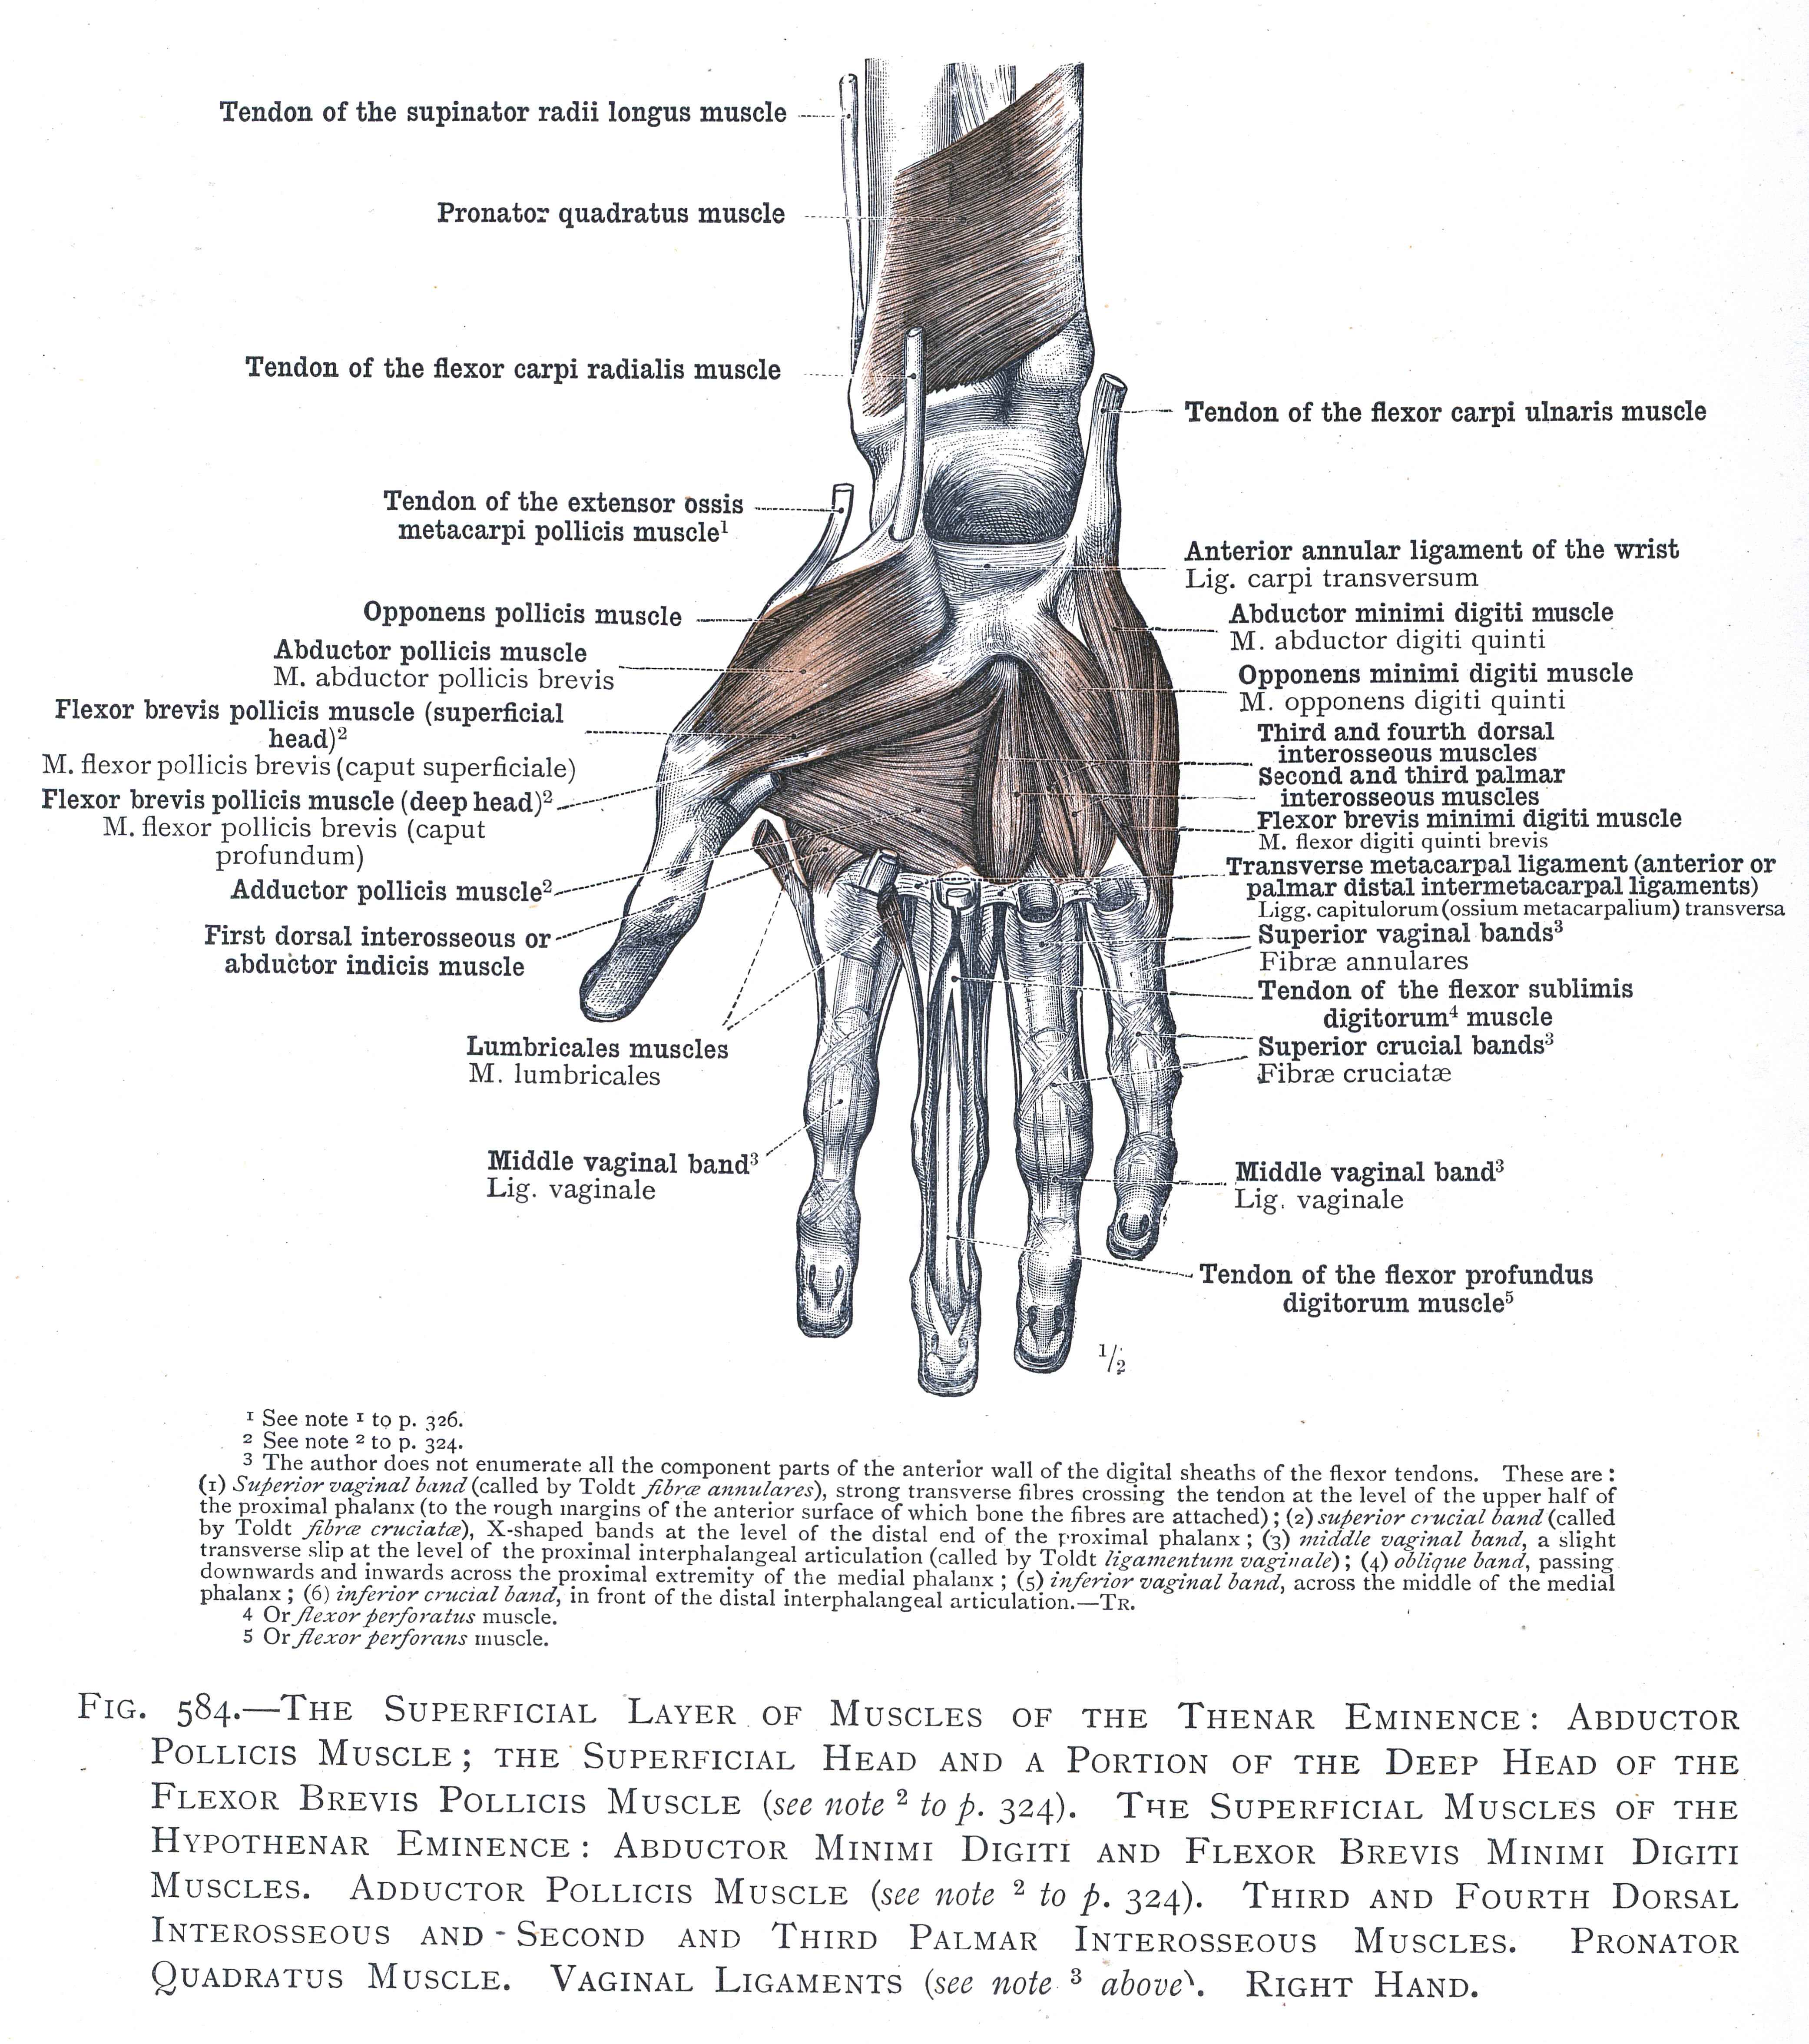 584. The superficial layer of muscles of the thenar eminence ...